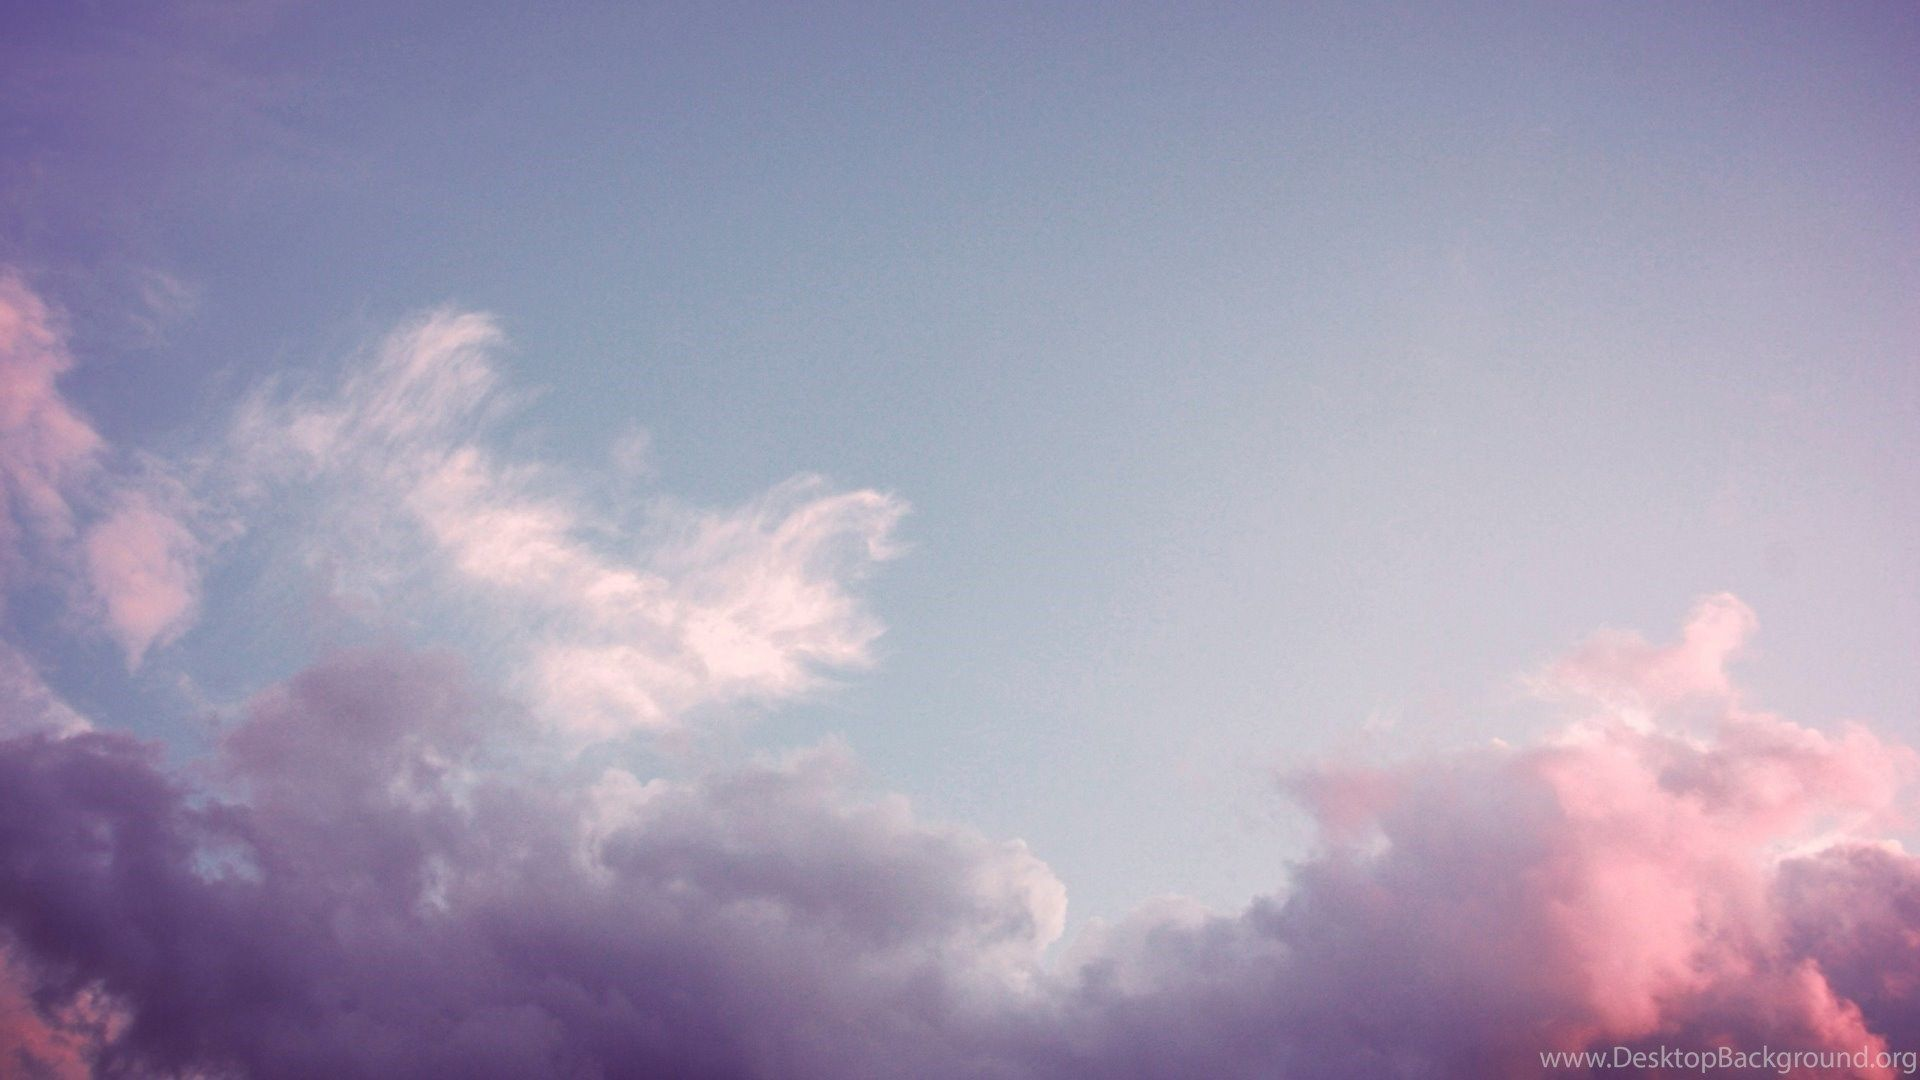 Sky Wallpaper Tumblr Posted By Sarah Johnson